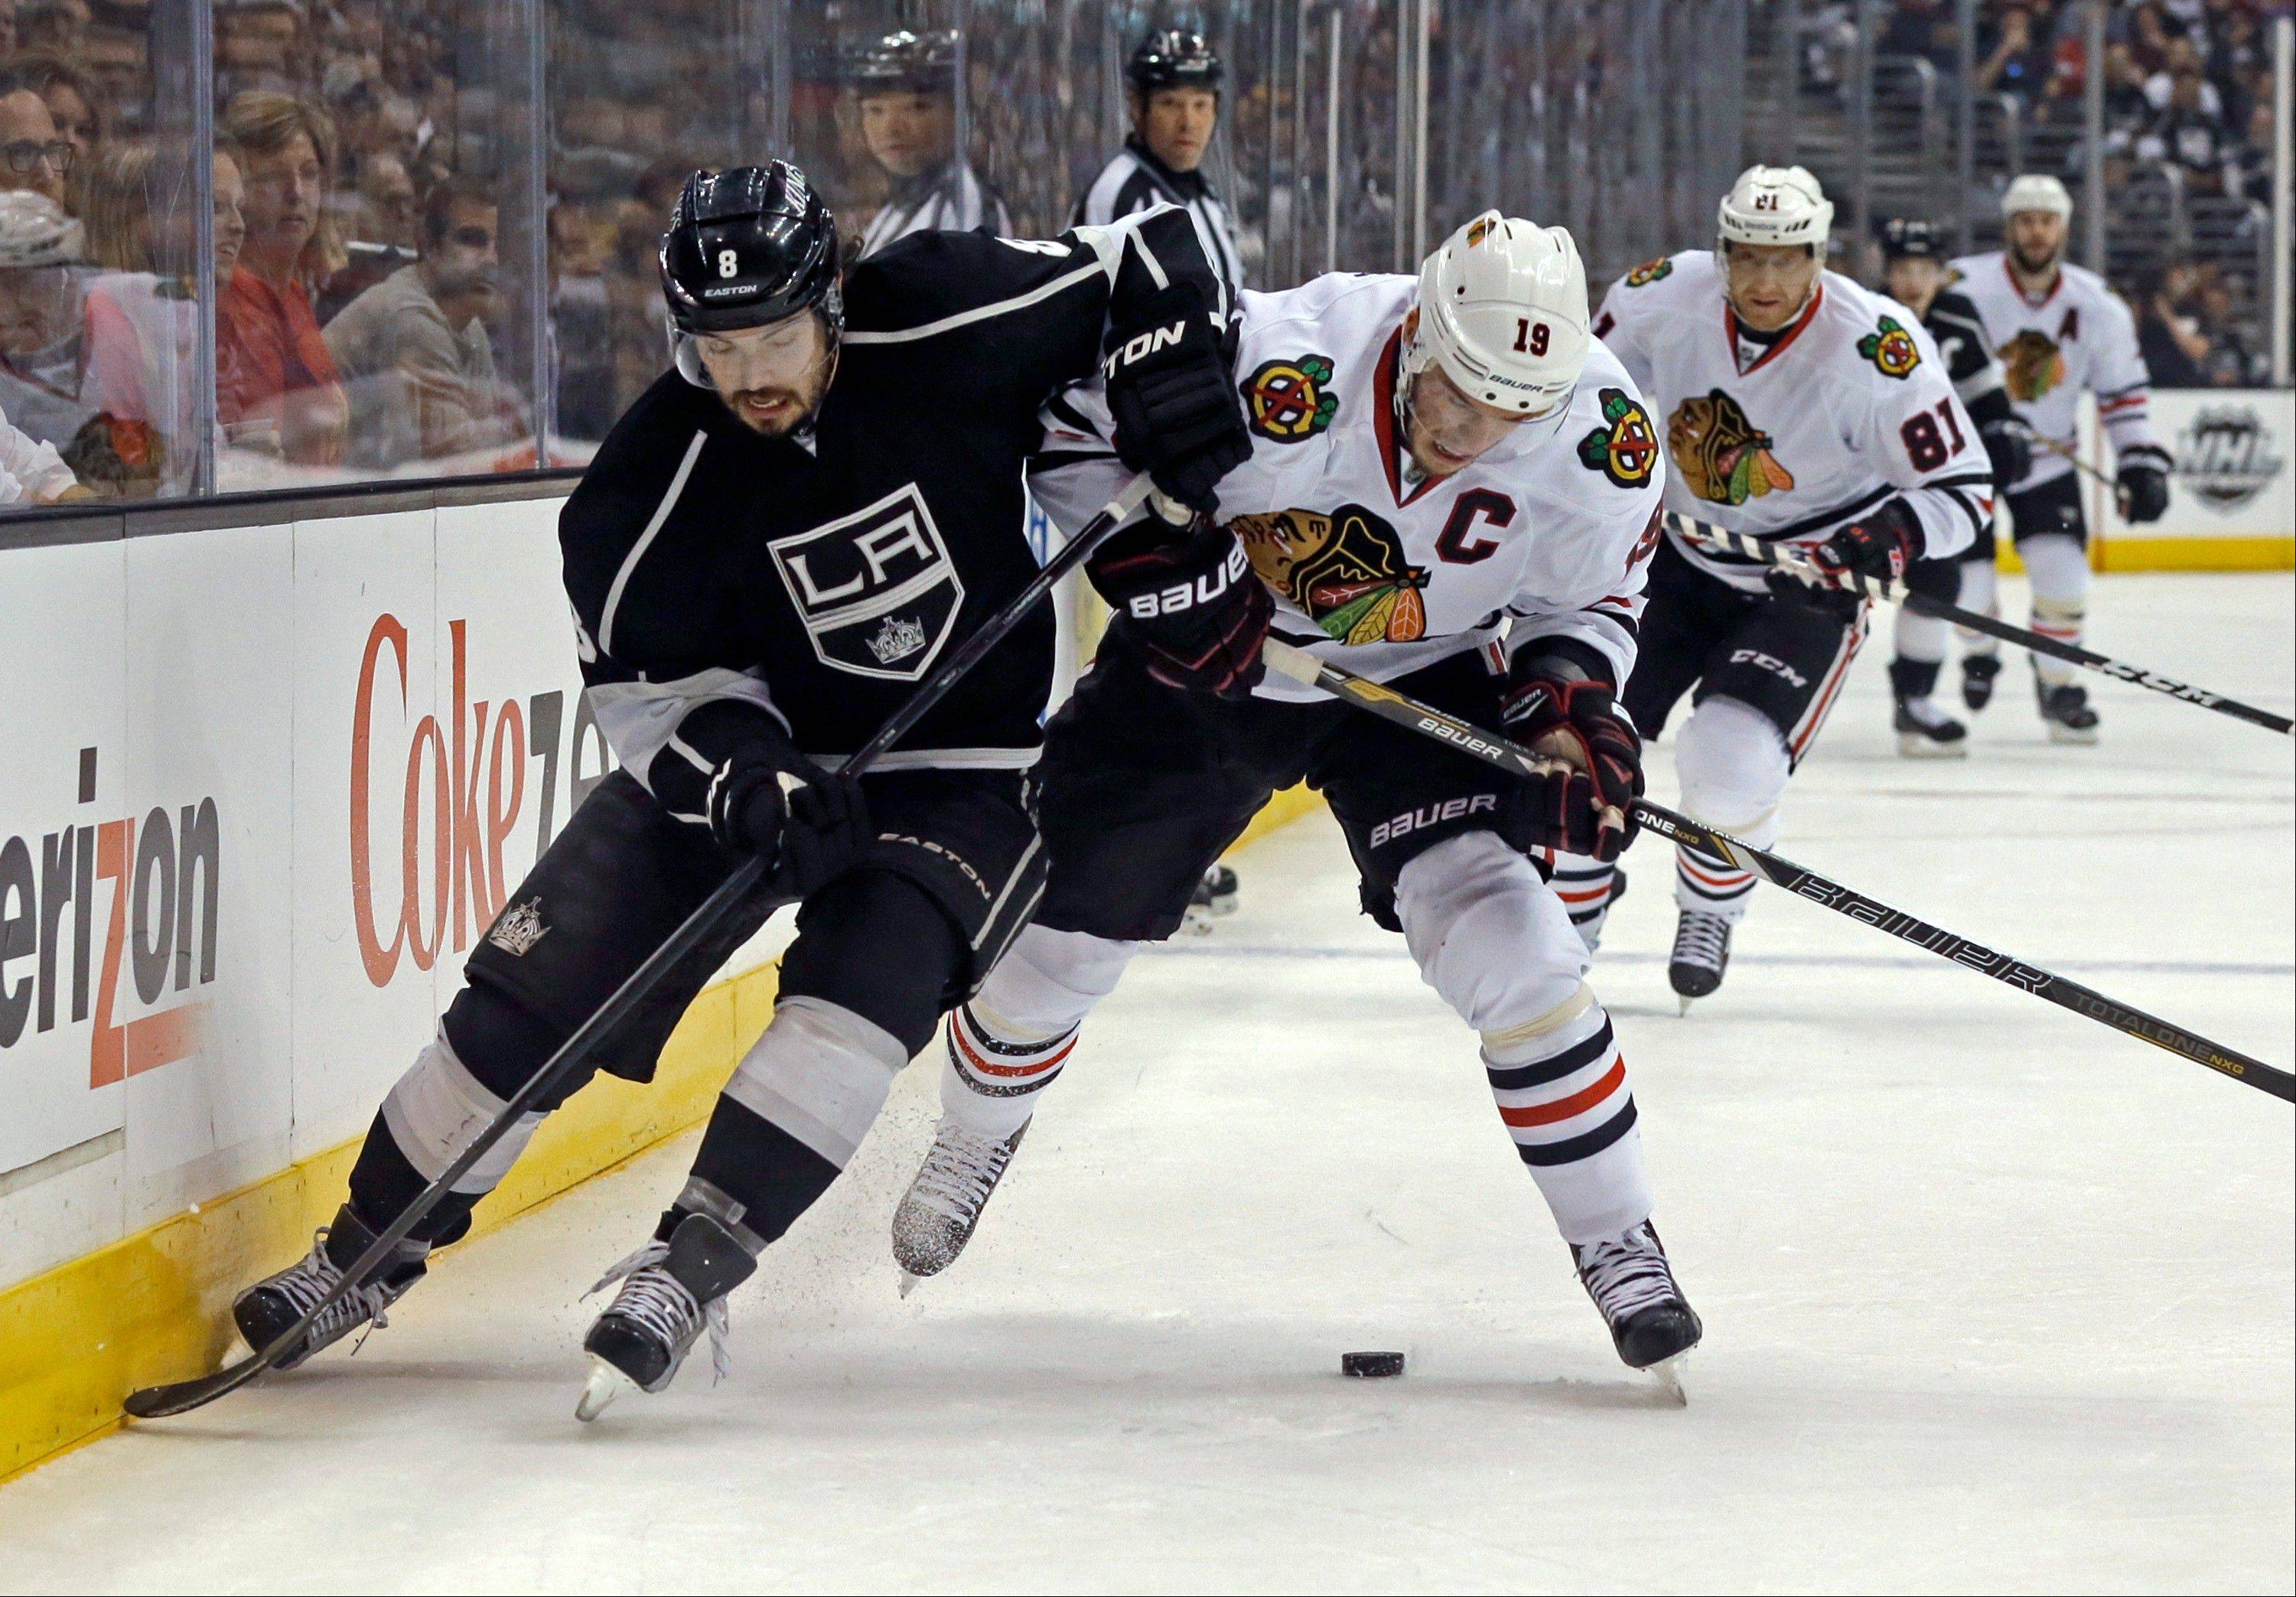 Los Angeles Kings defenseman Drew Doughty (8) and Chicago Blackhawks center Jonathan Toews (19) vie for the puck during the first period of Game 4 of the NHL hockey Stanley Cup Western Conference finals in Los Angeles on Thursday, June 6, 2013.